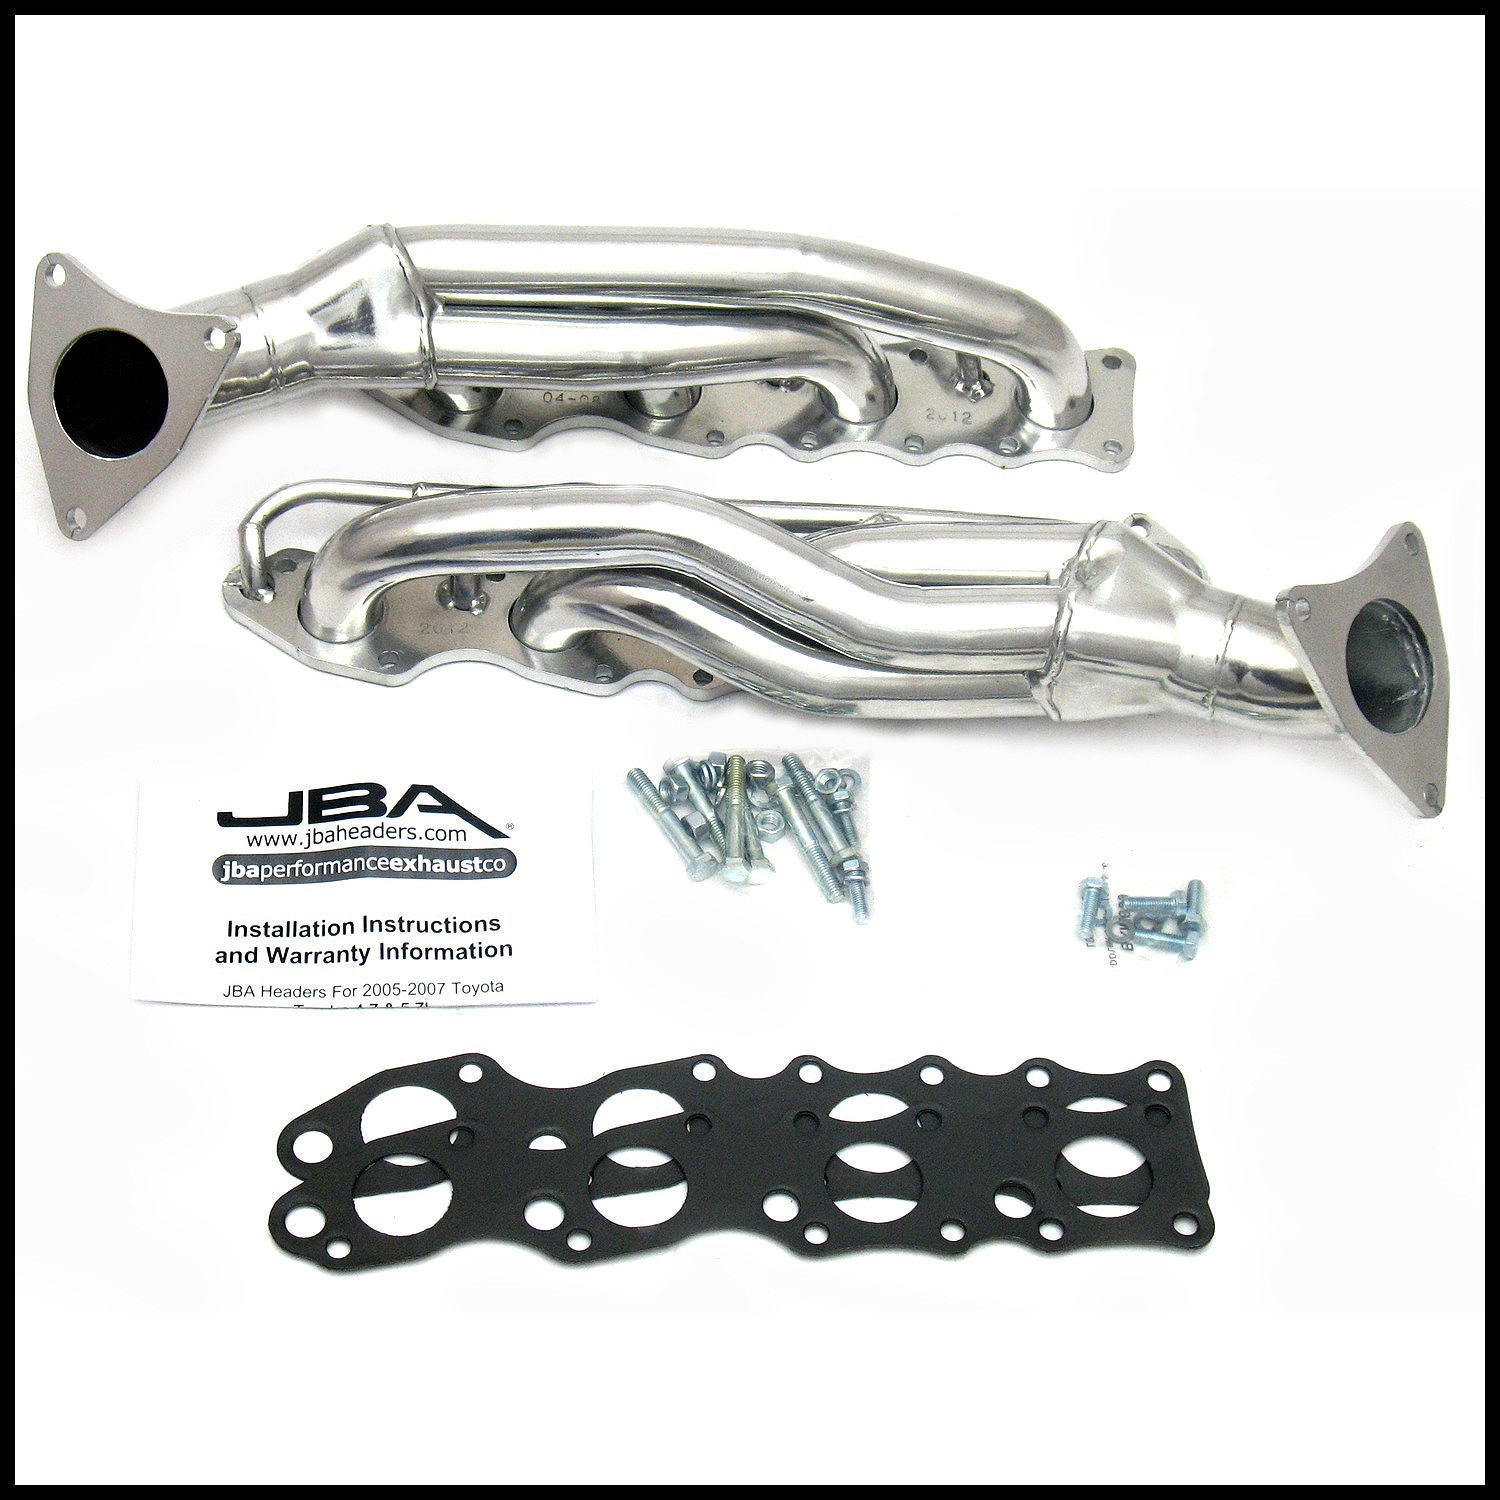 JBA Performance Exhaust Featured Product Toyota Tundra 5 7L and 4 7L Trucks